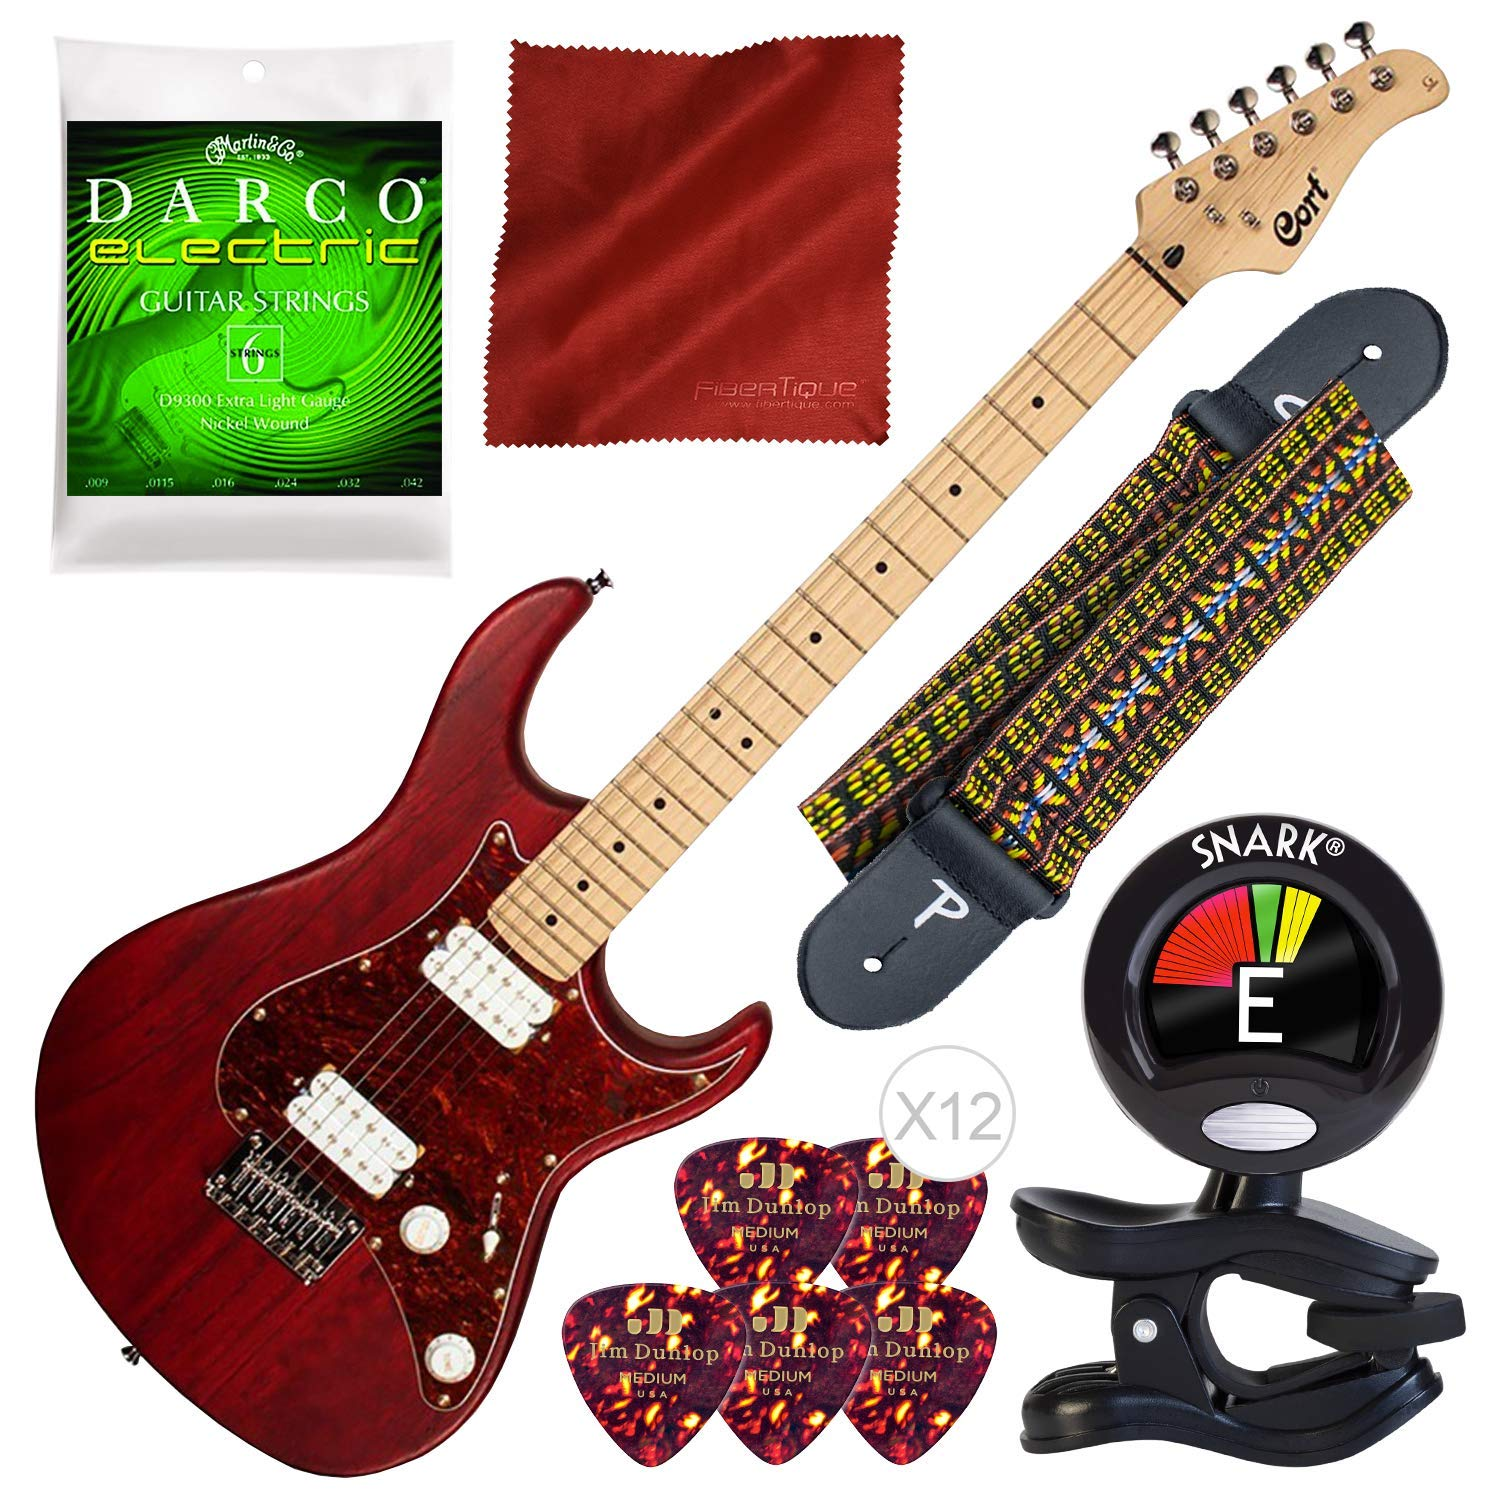 Cheap Cort G Series G100HH Electric Guitar Open Pore Black Cherry with Tuner Strings and Bundle Black Friday & Cyber Monday 2019